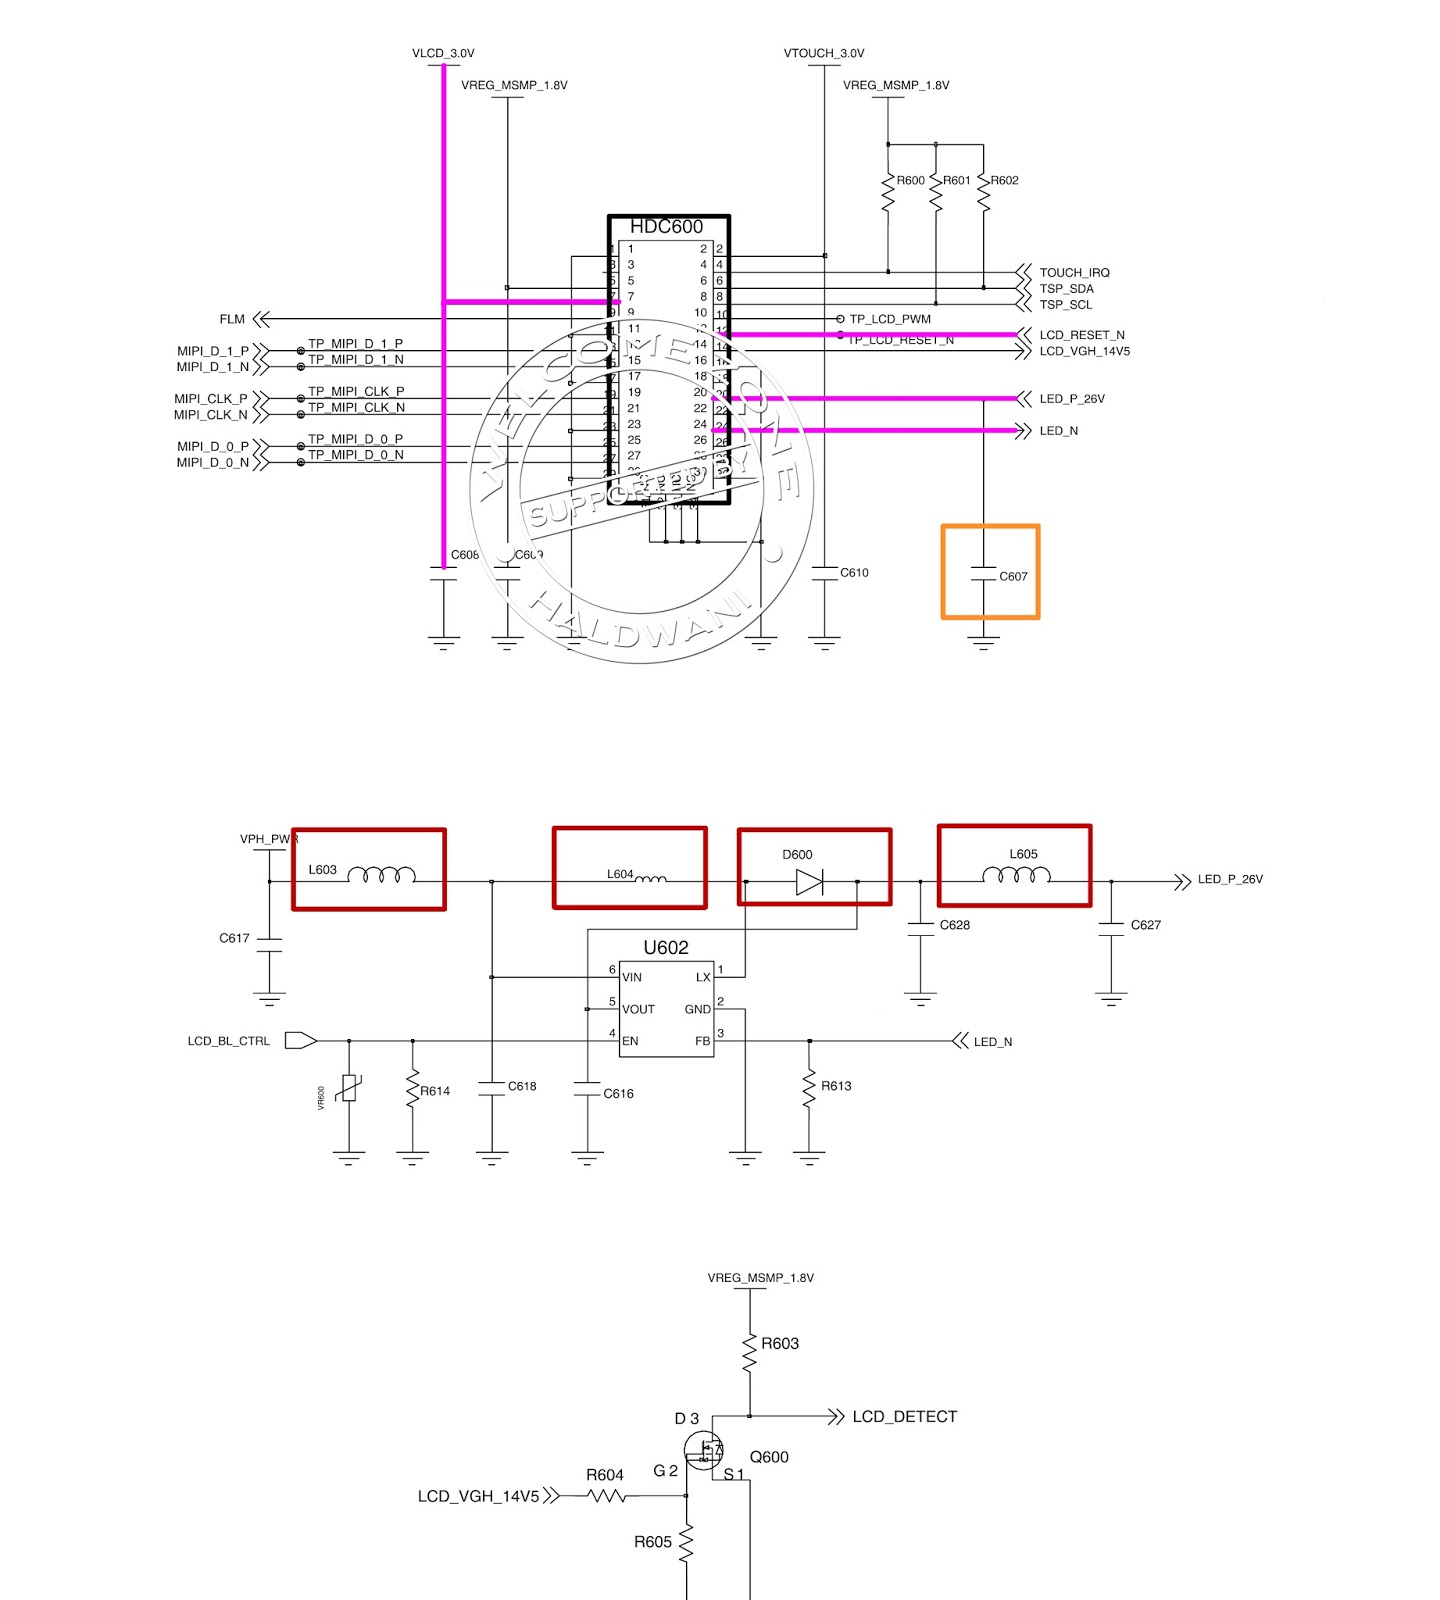 samsung s7562 diagram